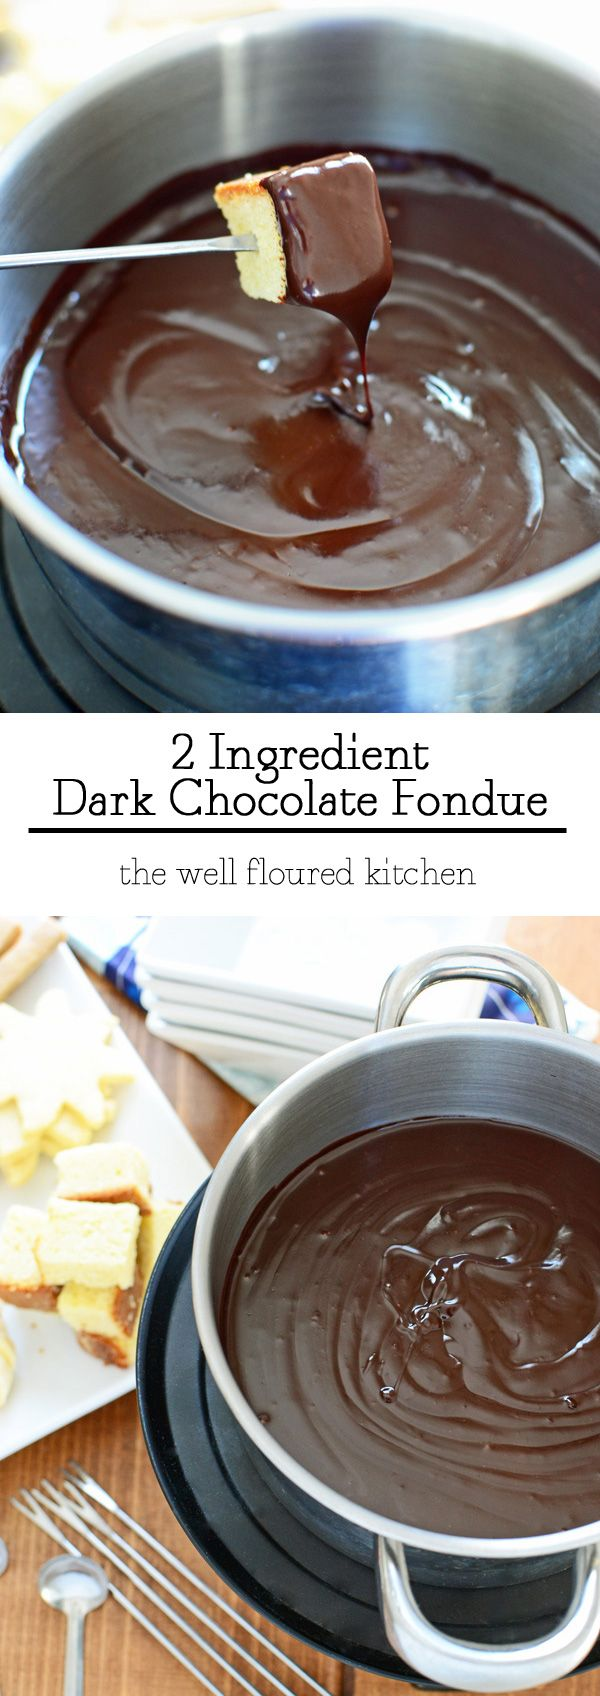 Two Ingredient Dark Chocolate Fondue